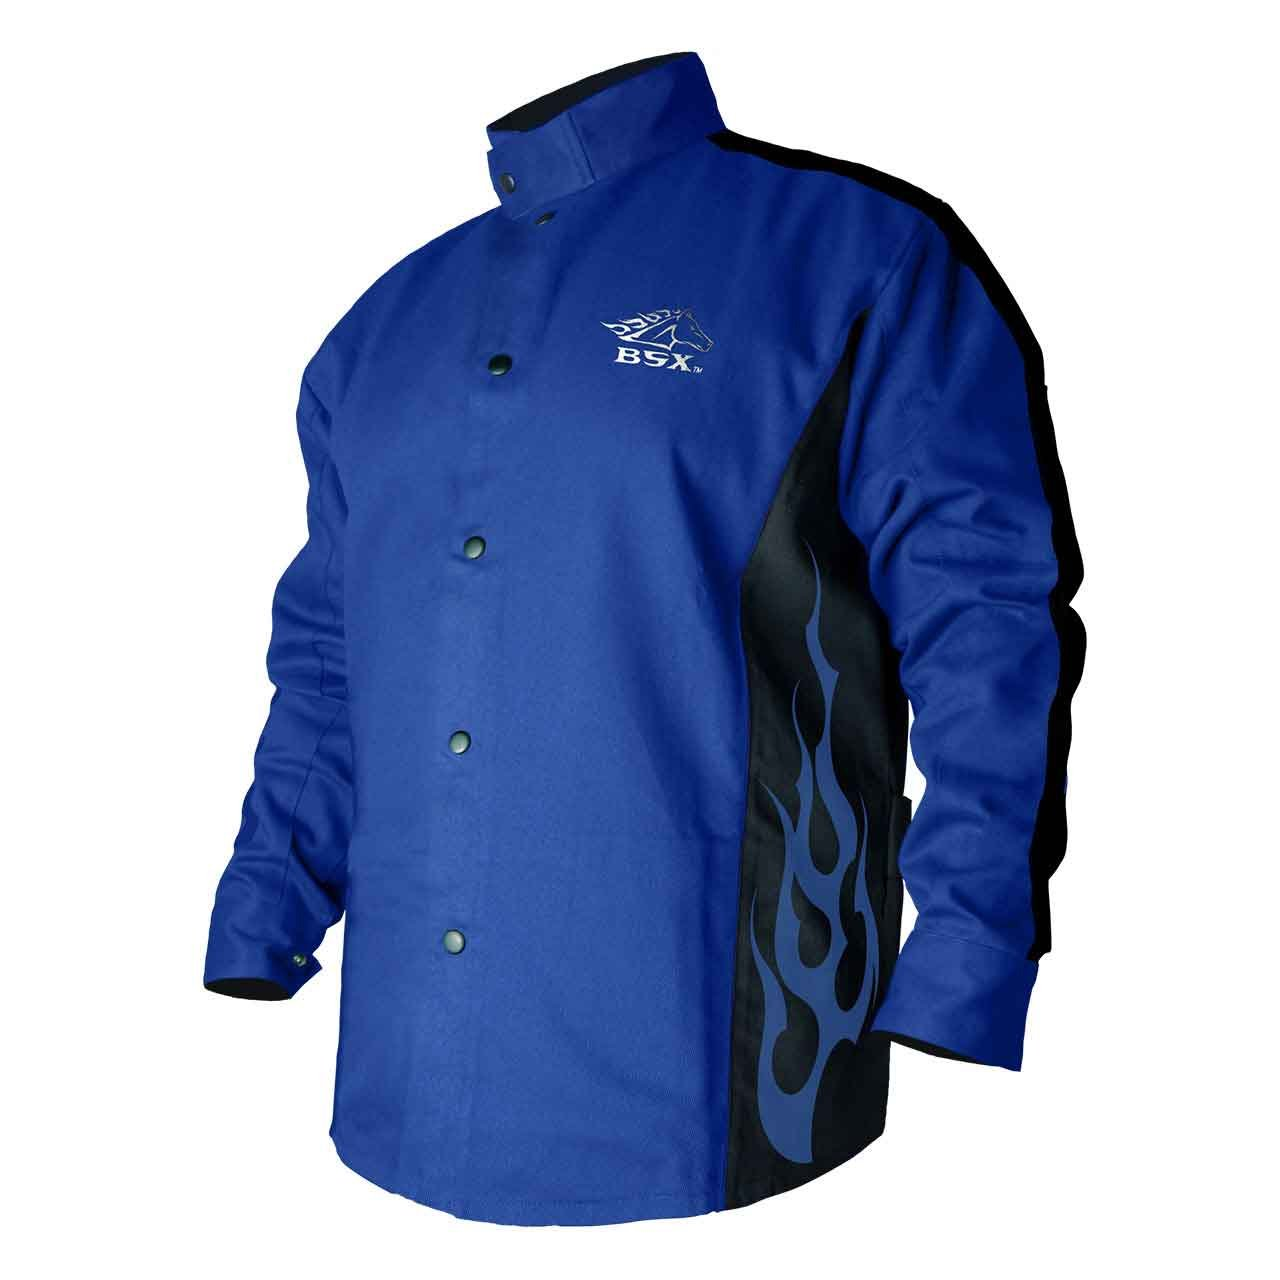 Bsx Bxrb9C Small Blue With Blue Flames Welding Jacket